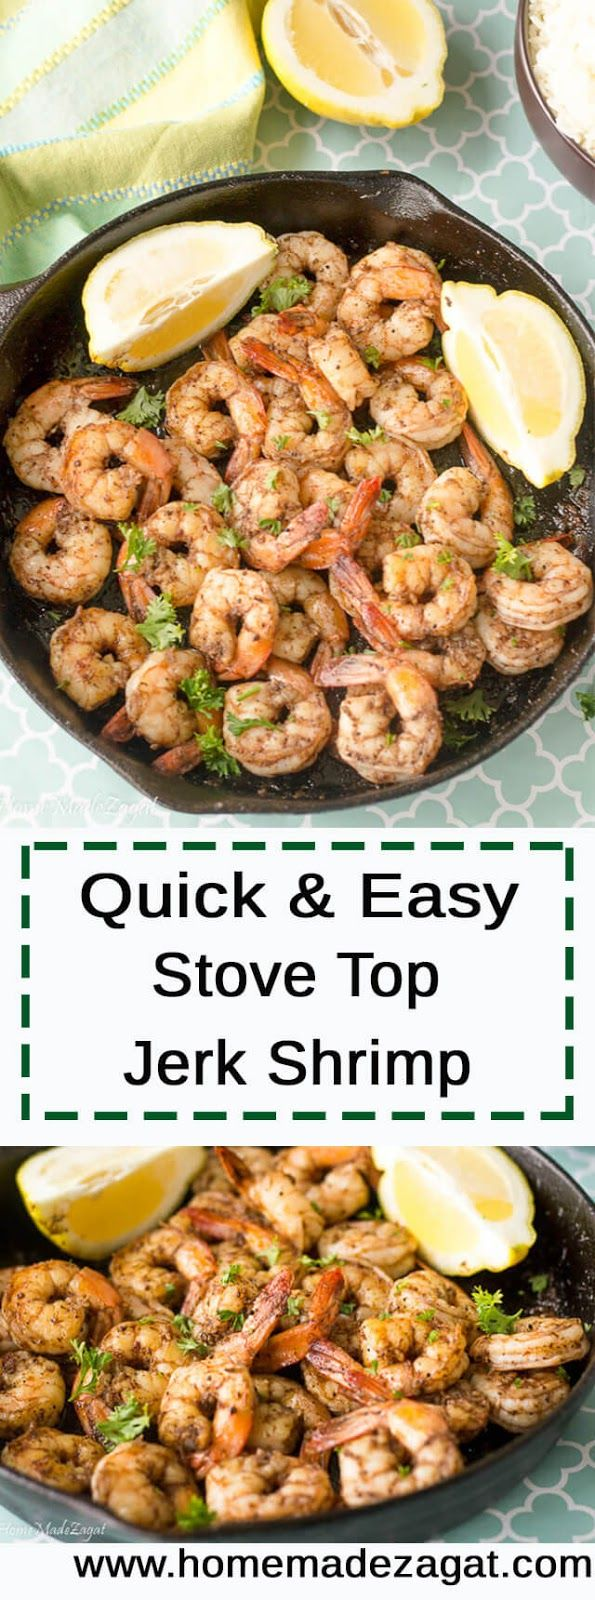 An easy recipe for making a quick, delicious jerk shrimp that can be easily used to top salads, or added into other dishes.